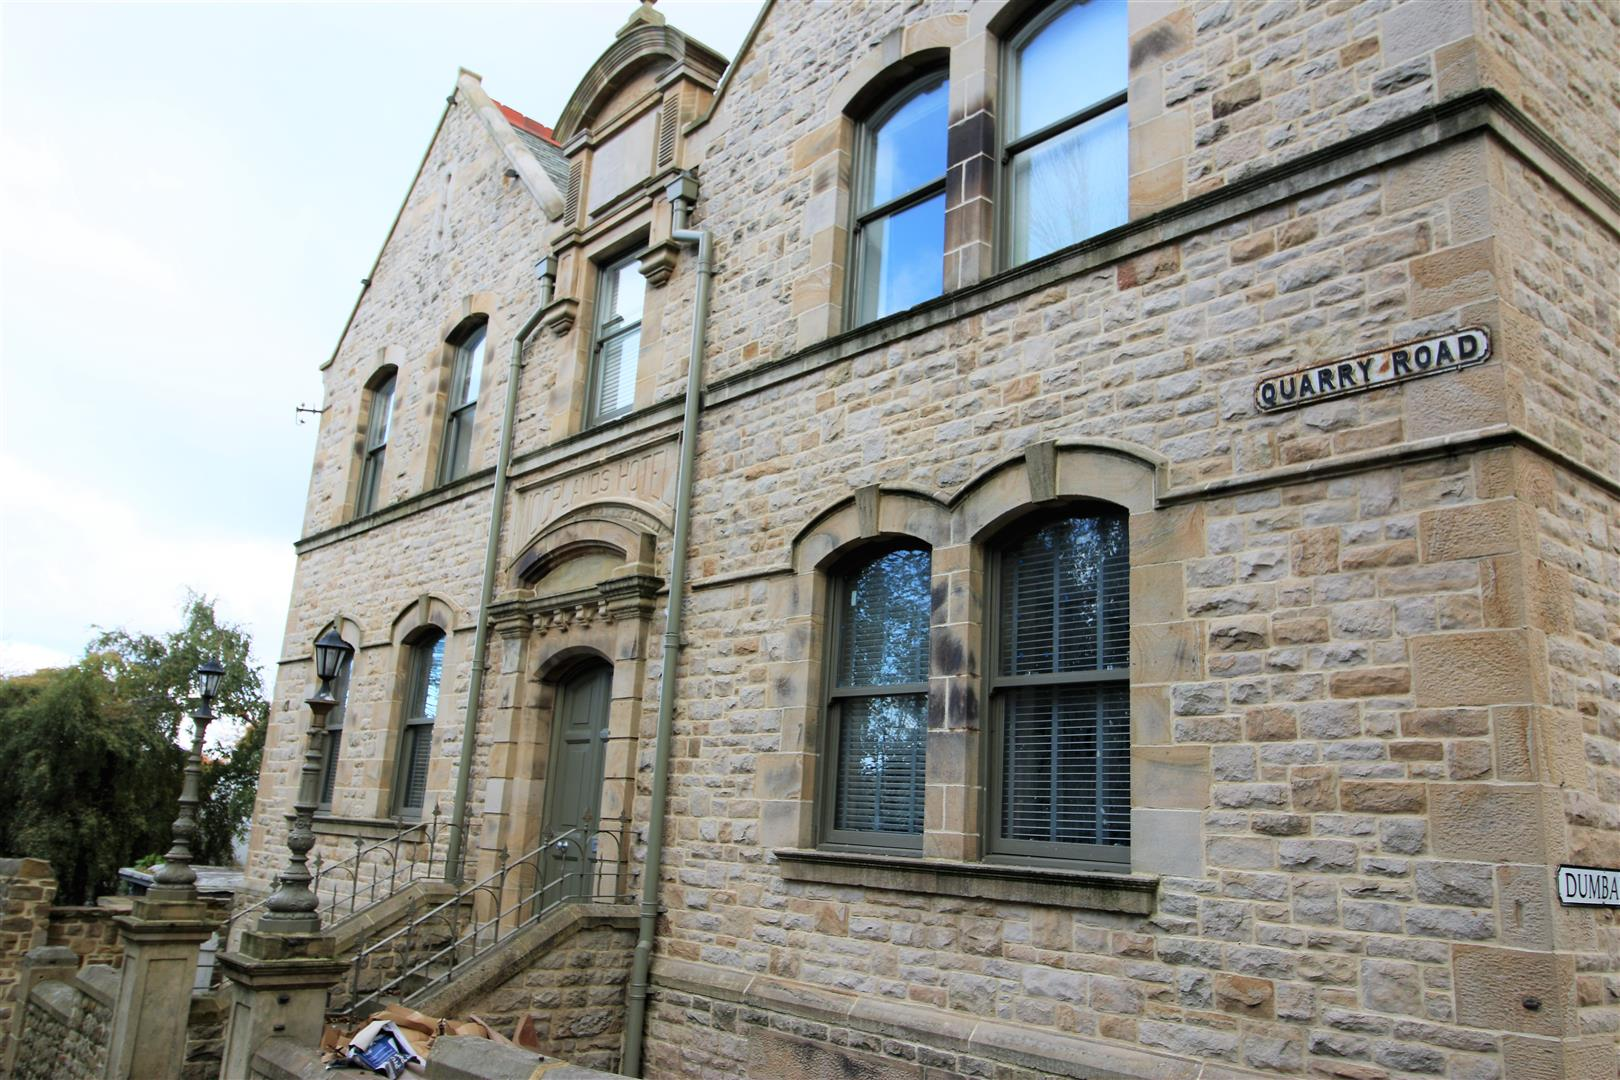 Studio 6 Moorlands Heights, Quarry Road, Lancaster, LA1 3BY